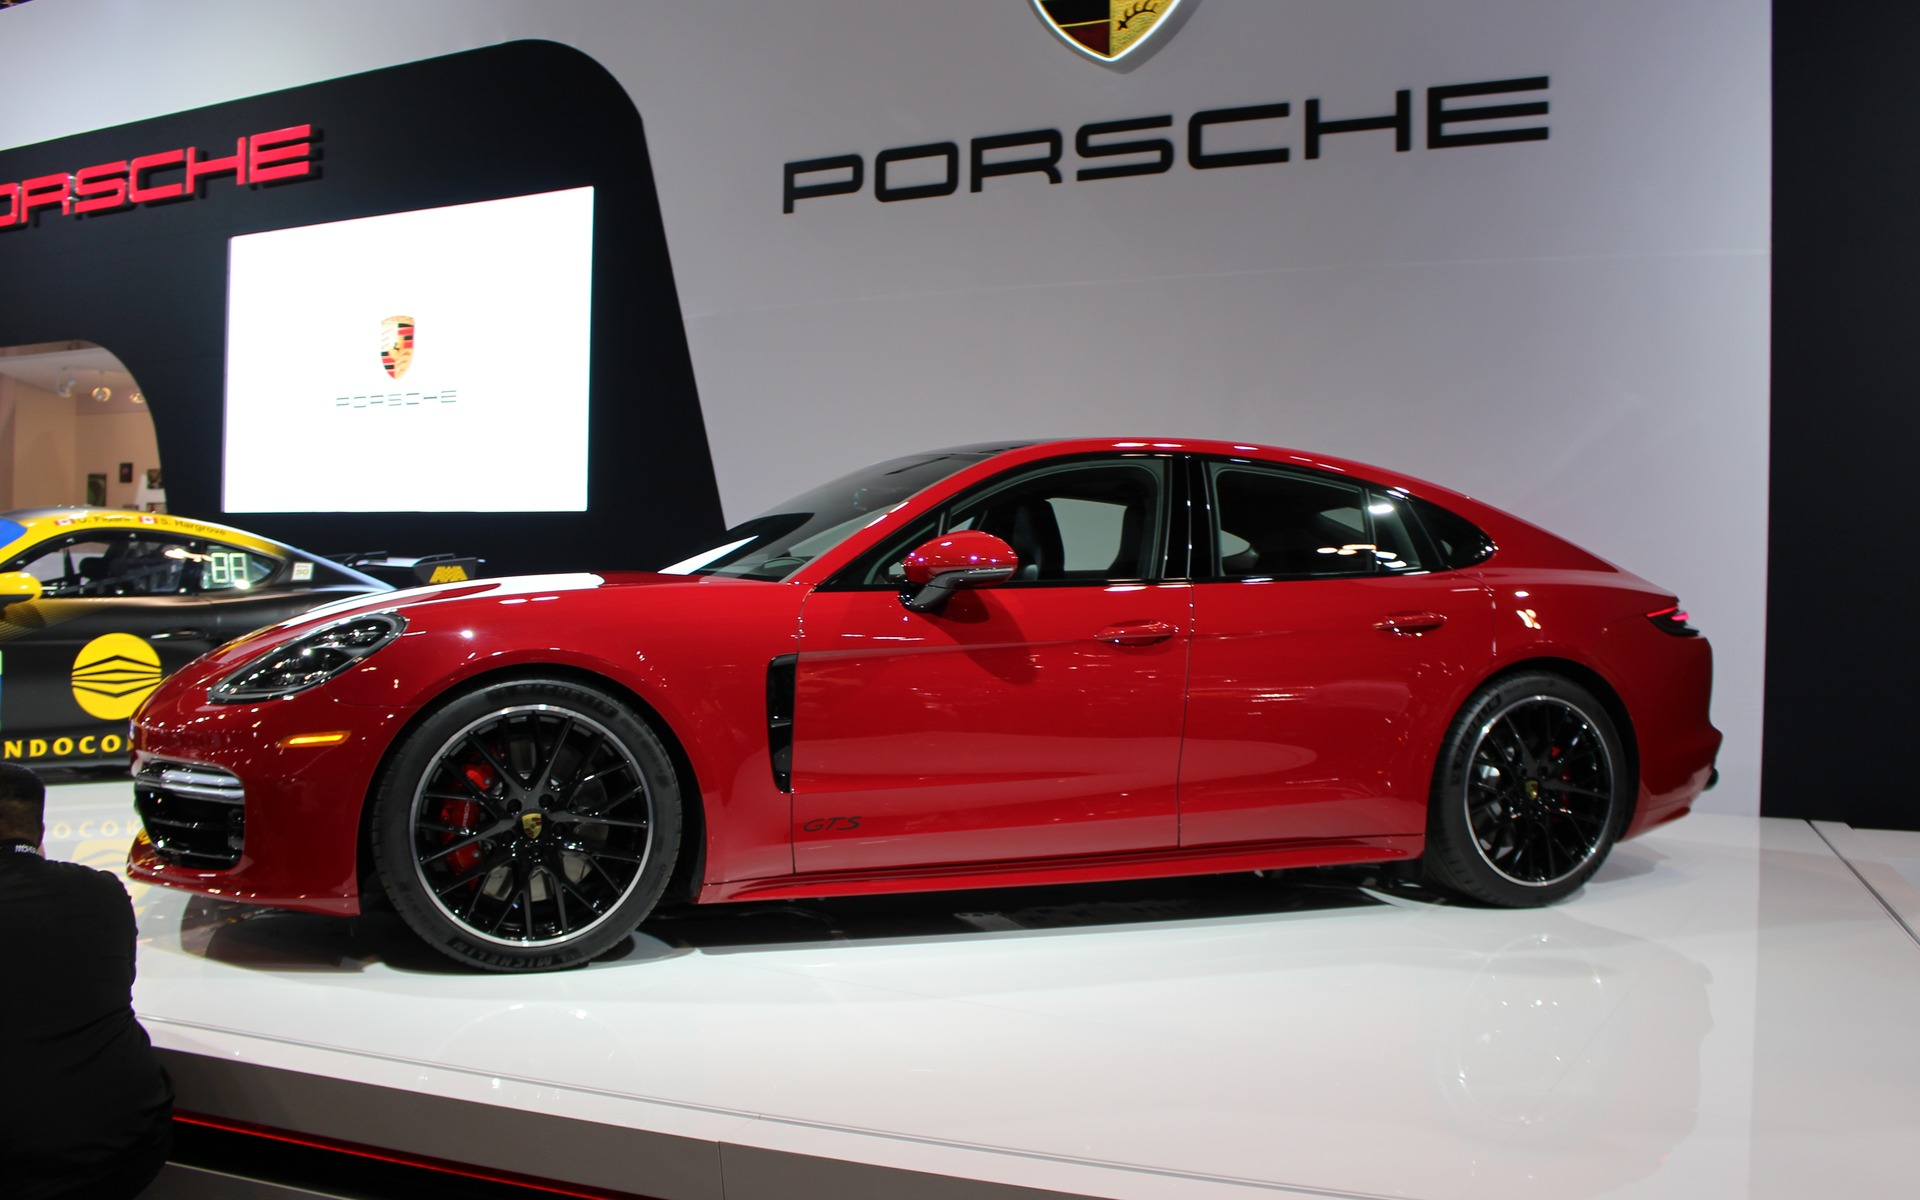 Porsche Presents Panamera Gts And 718 Cayman Gt4 Clubsport In Toronto The Car Guide